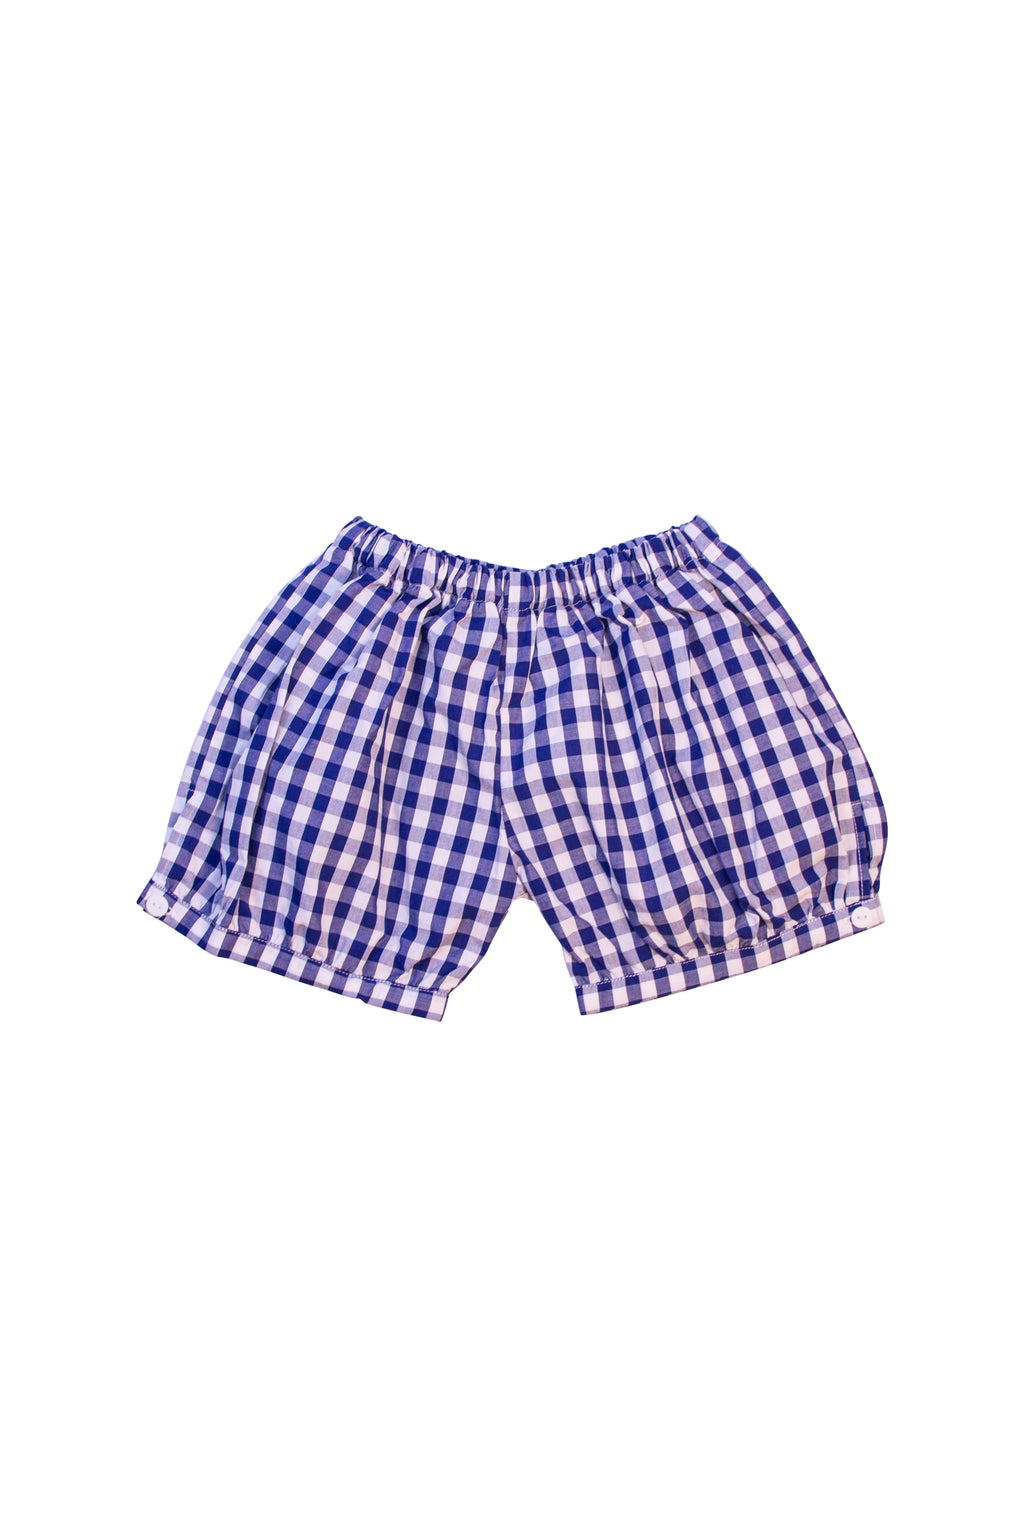 Unisex Navy Check Banded Shorts